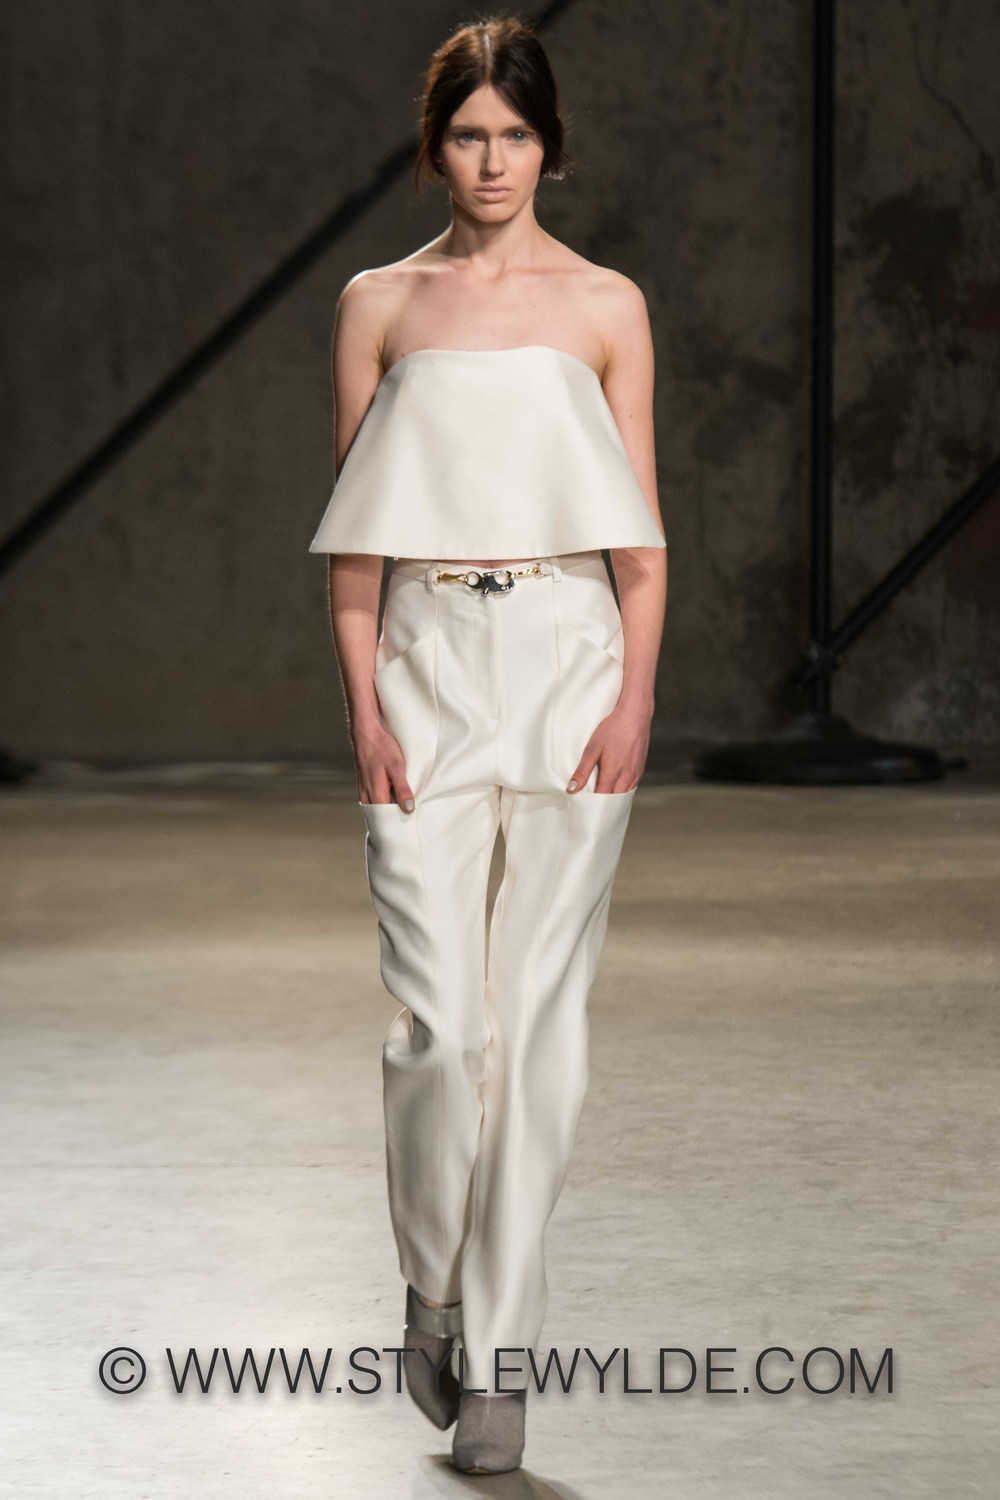 stylewylde_sally_lapointe_fw_2014-5.jpg